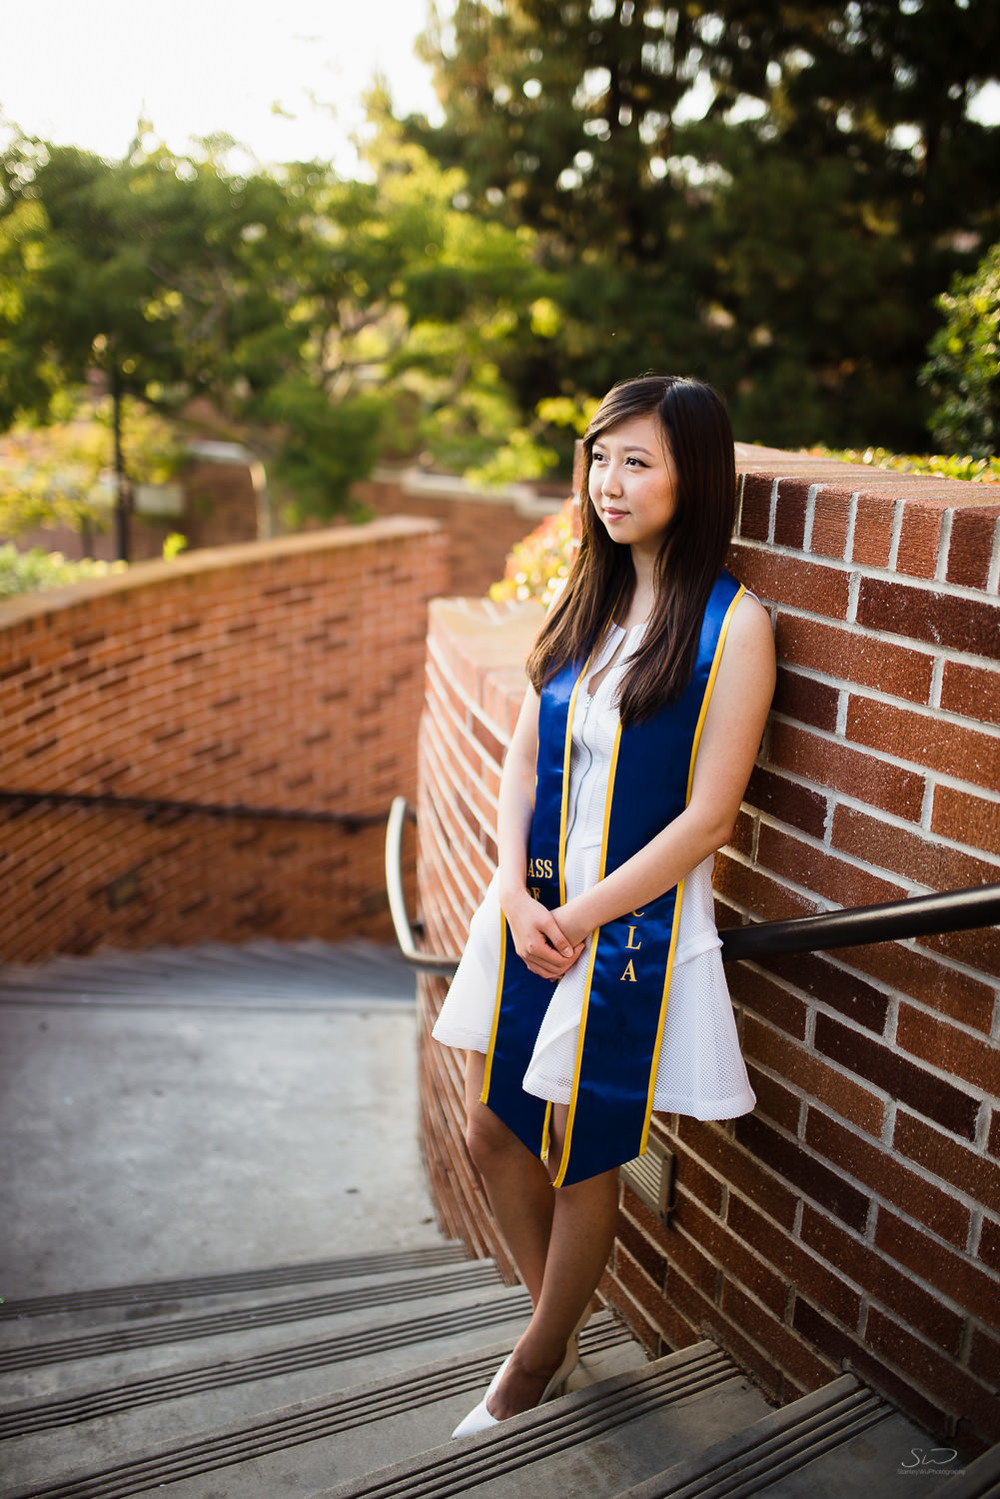 ucla-uc-berkeley-couple-grad-4.jpg